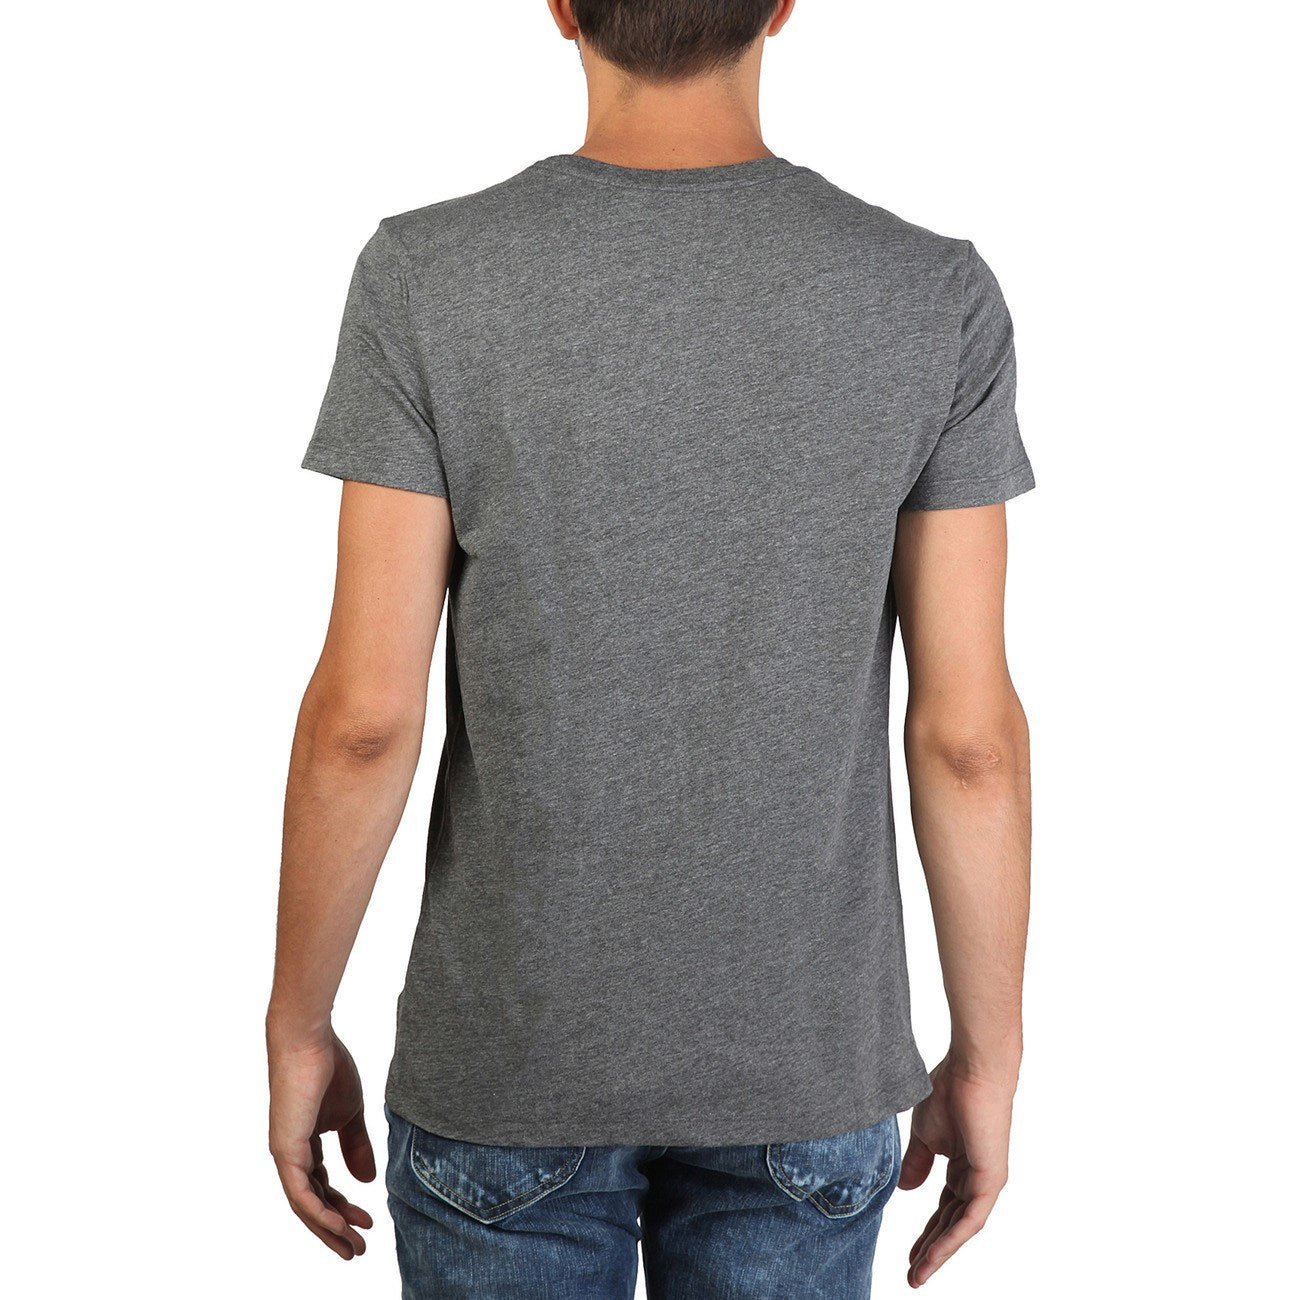 Lee - Print tshirt Slim fit - Grey - Ninostyle